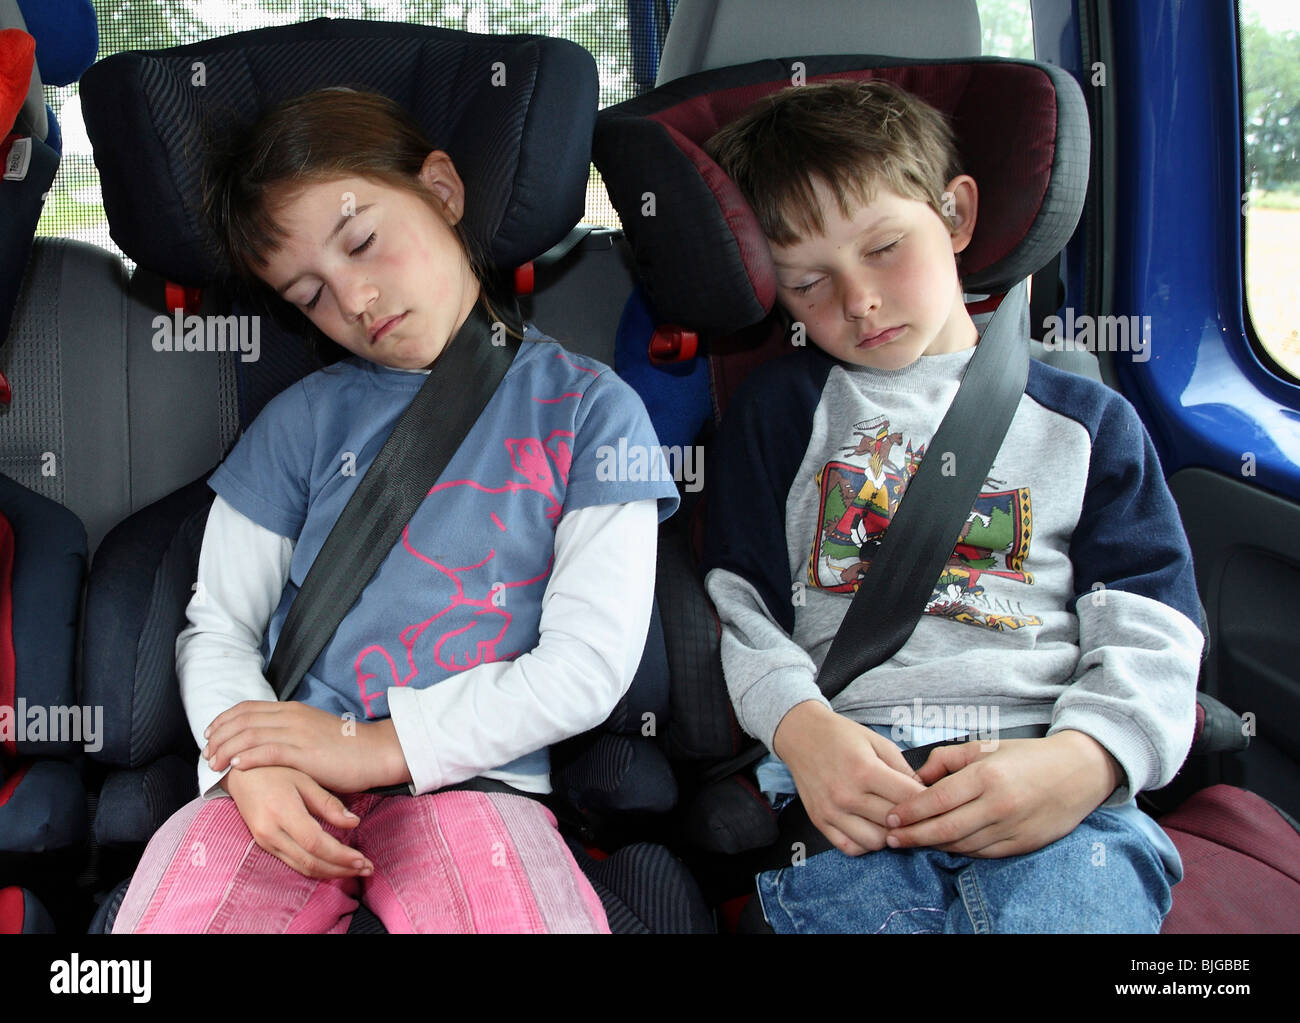 Children Sleeping In Their Child Seats A Car Werl Germany